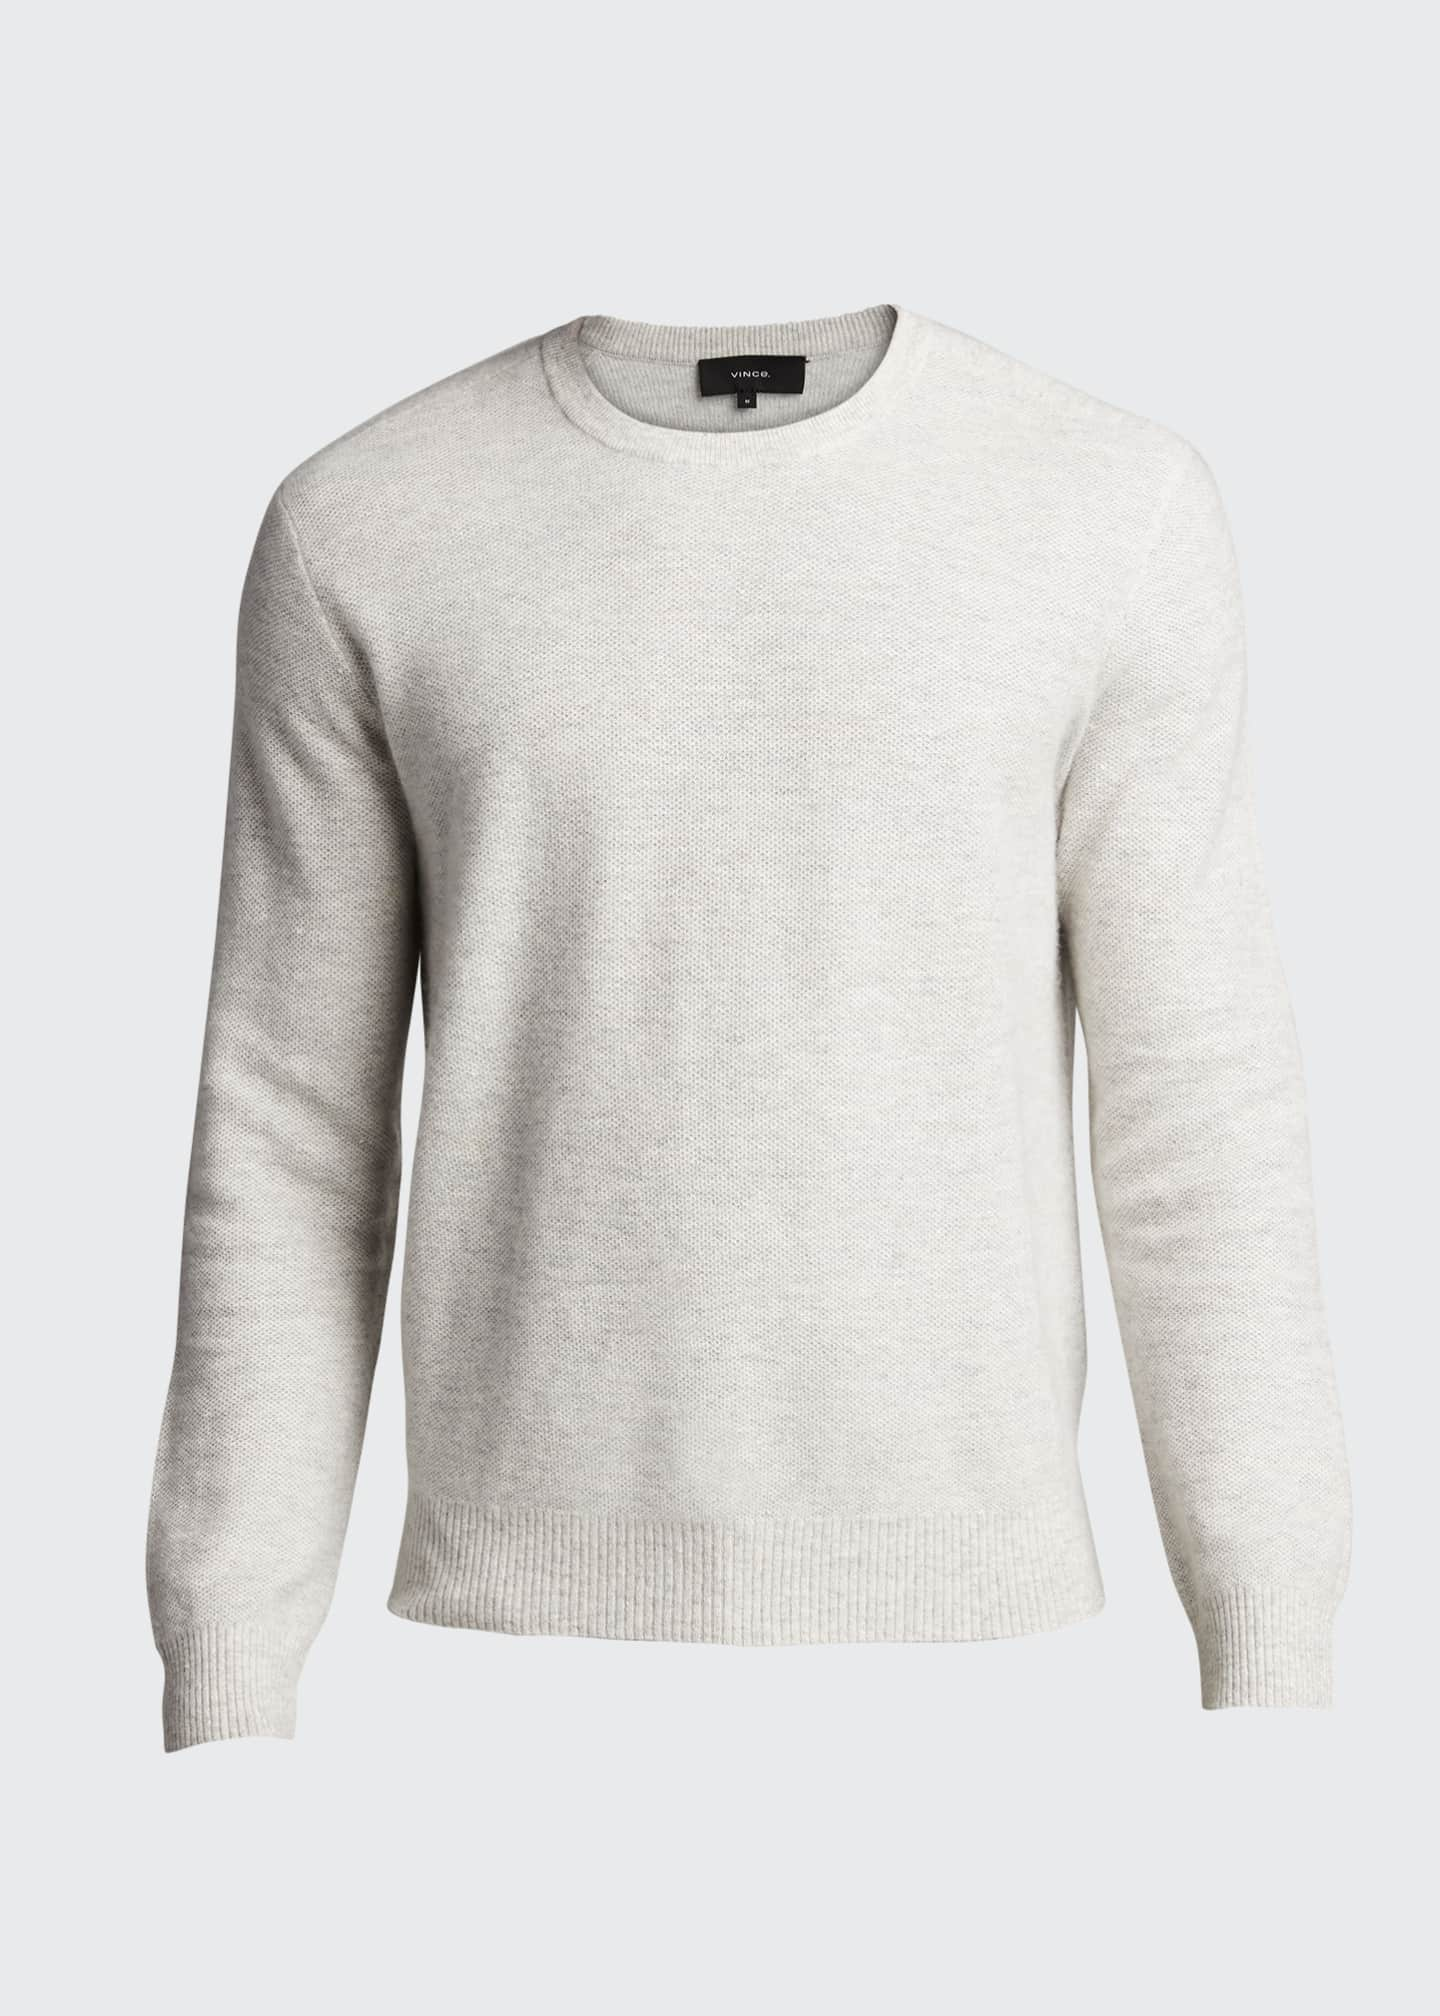 Image 5 of 5: Men's Tuck-Stitch Sweater